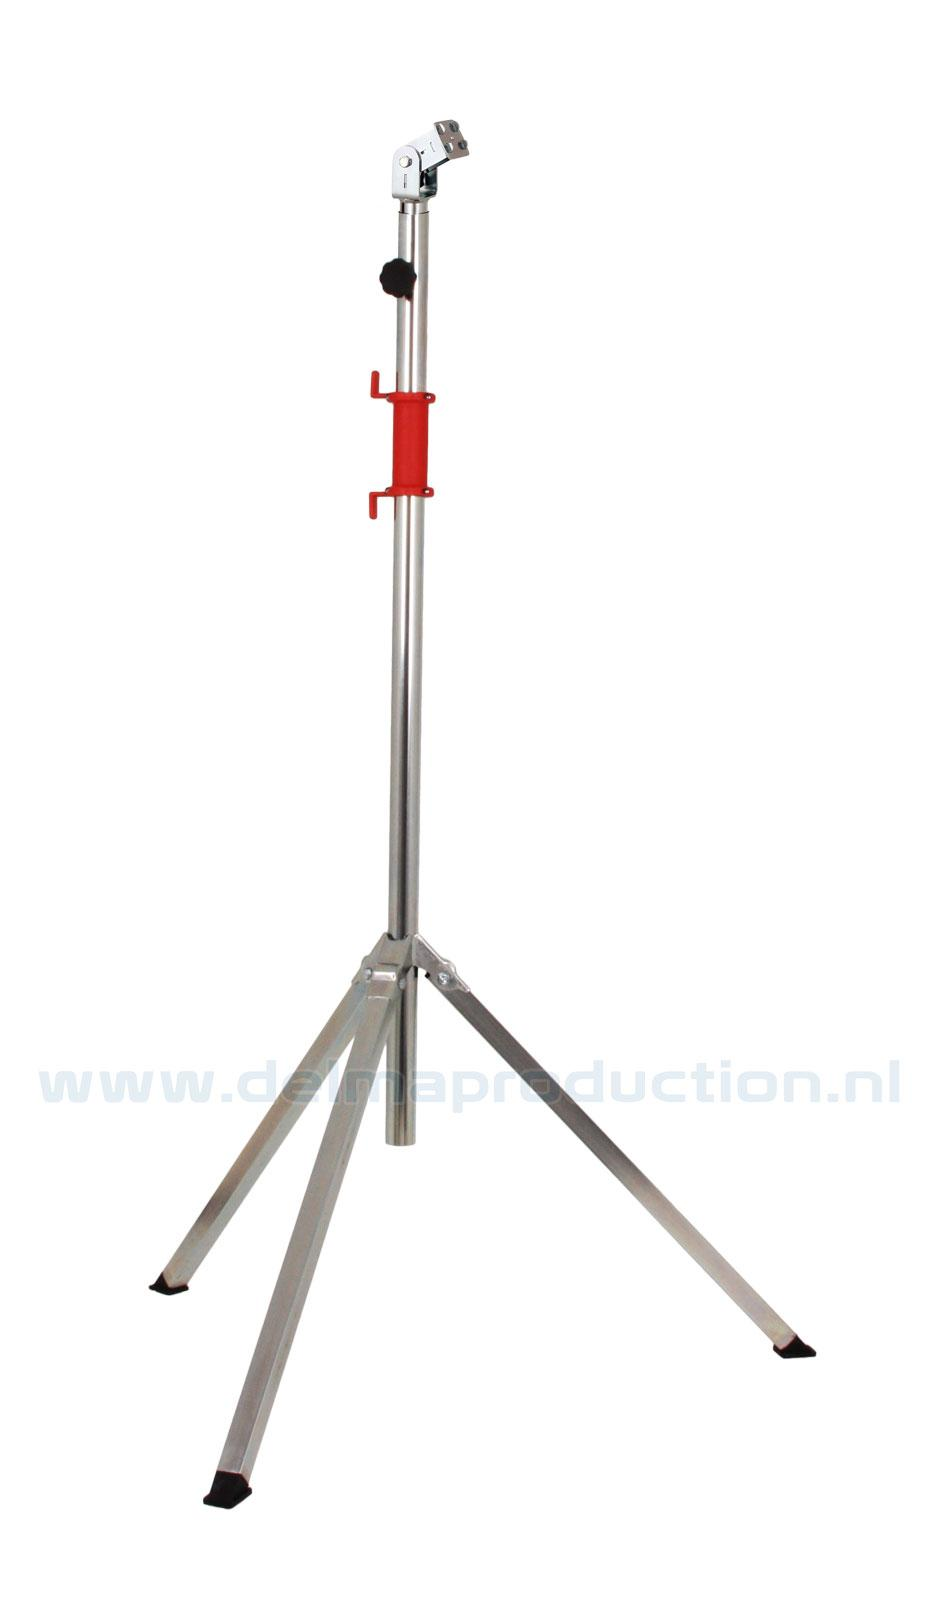 Tripod worklight stand 2-part, quick release system